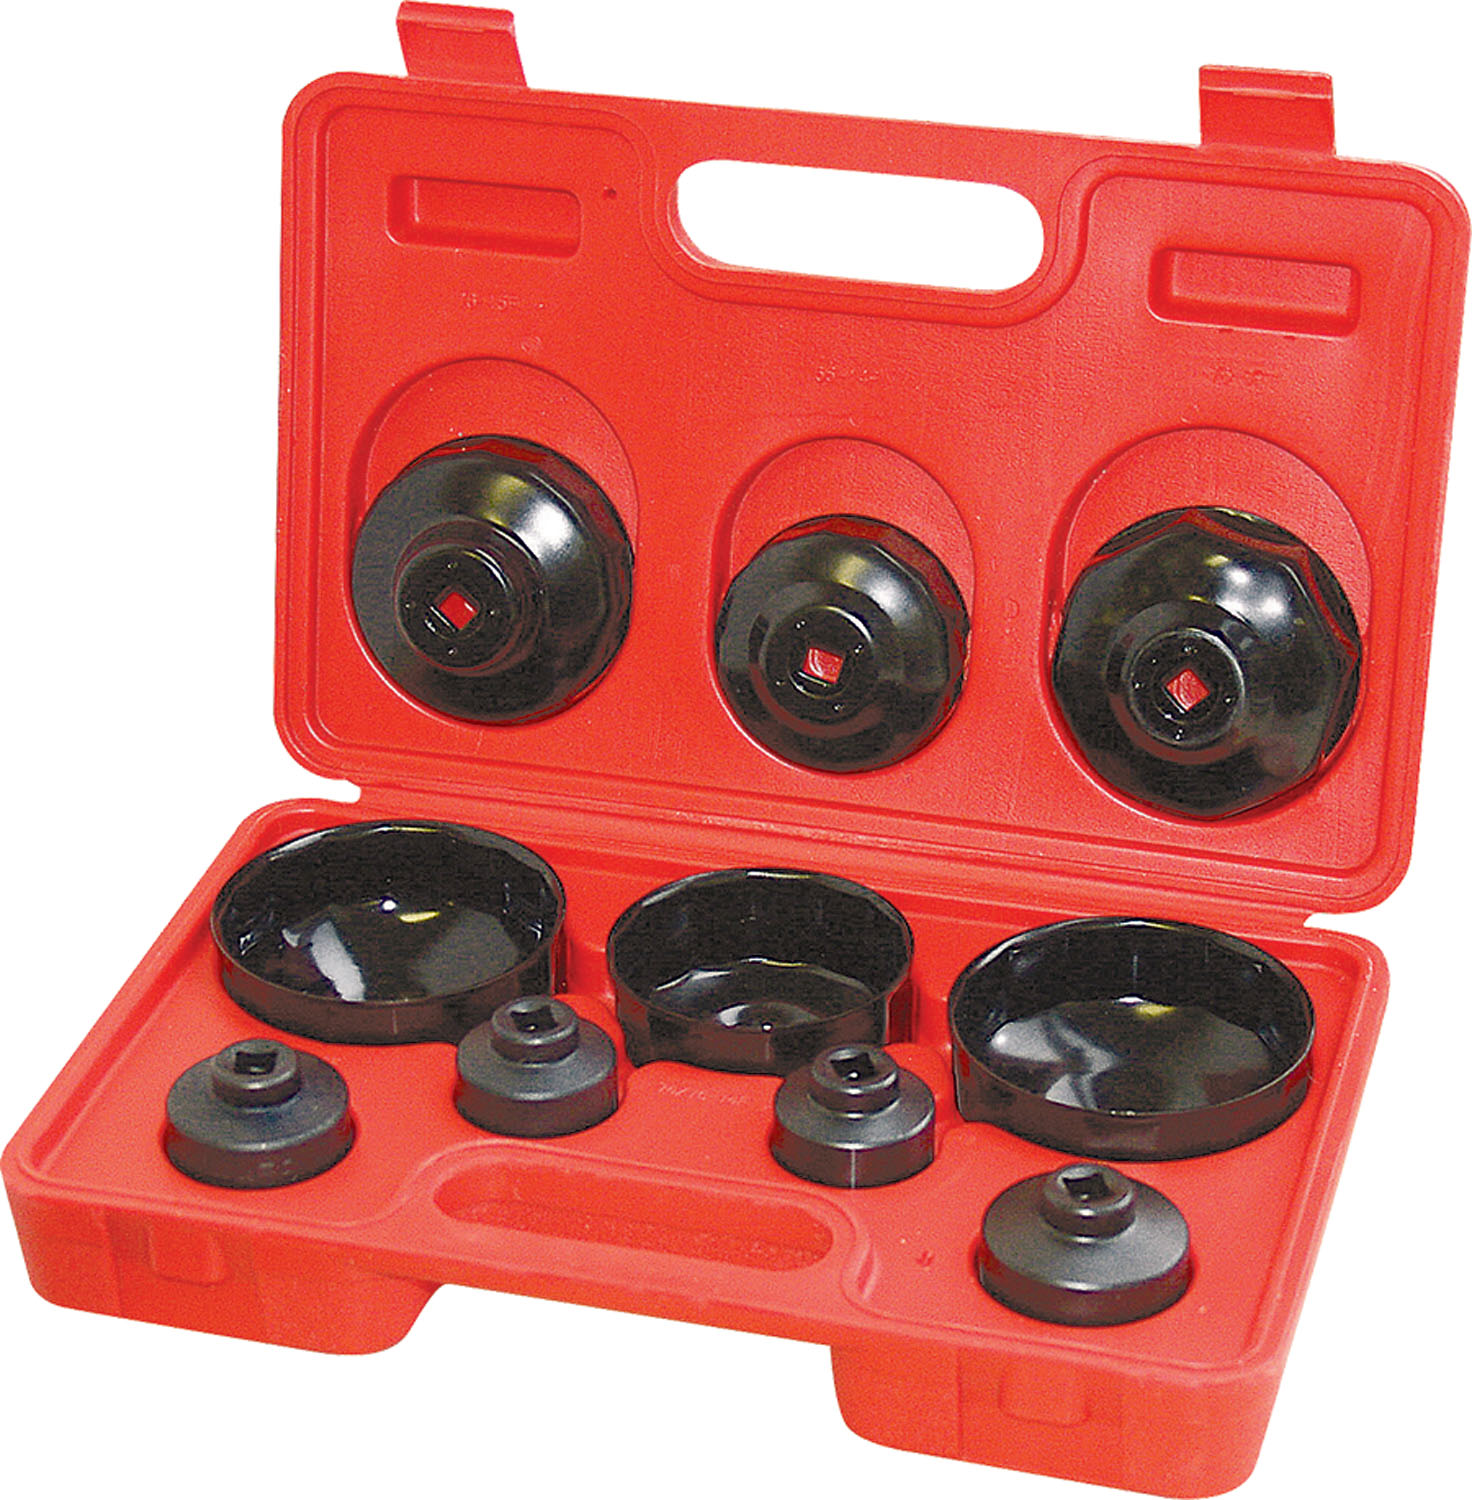 CTA Manufacturing Corporation 10 Piece Cup Type  Oil Filter Wrench Set